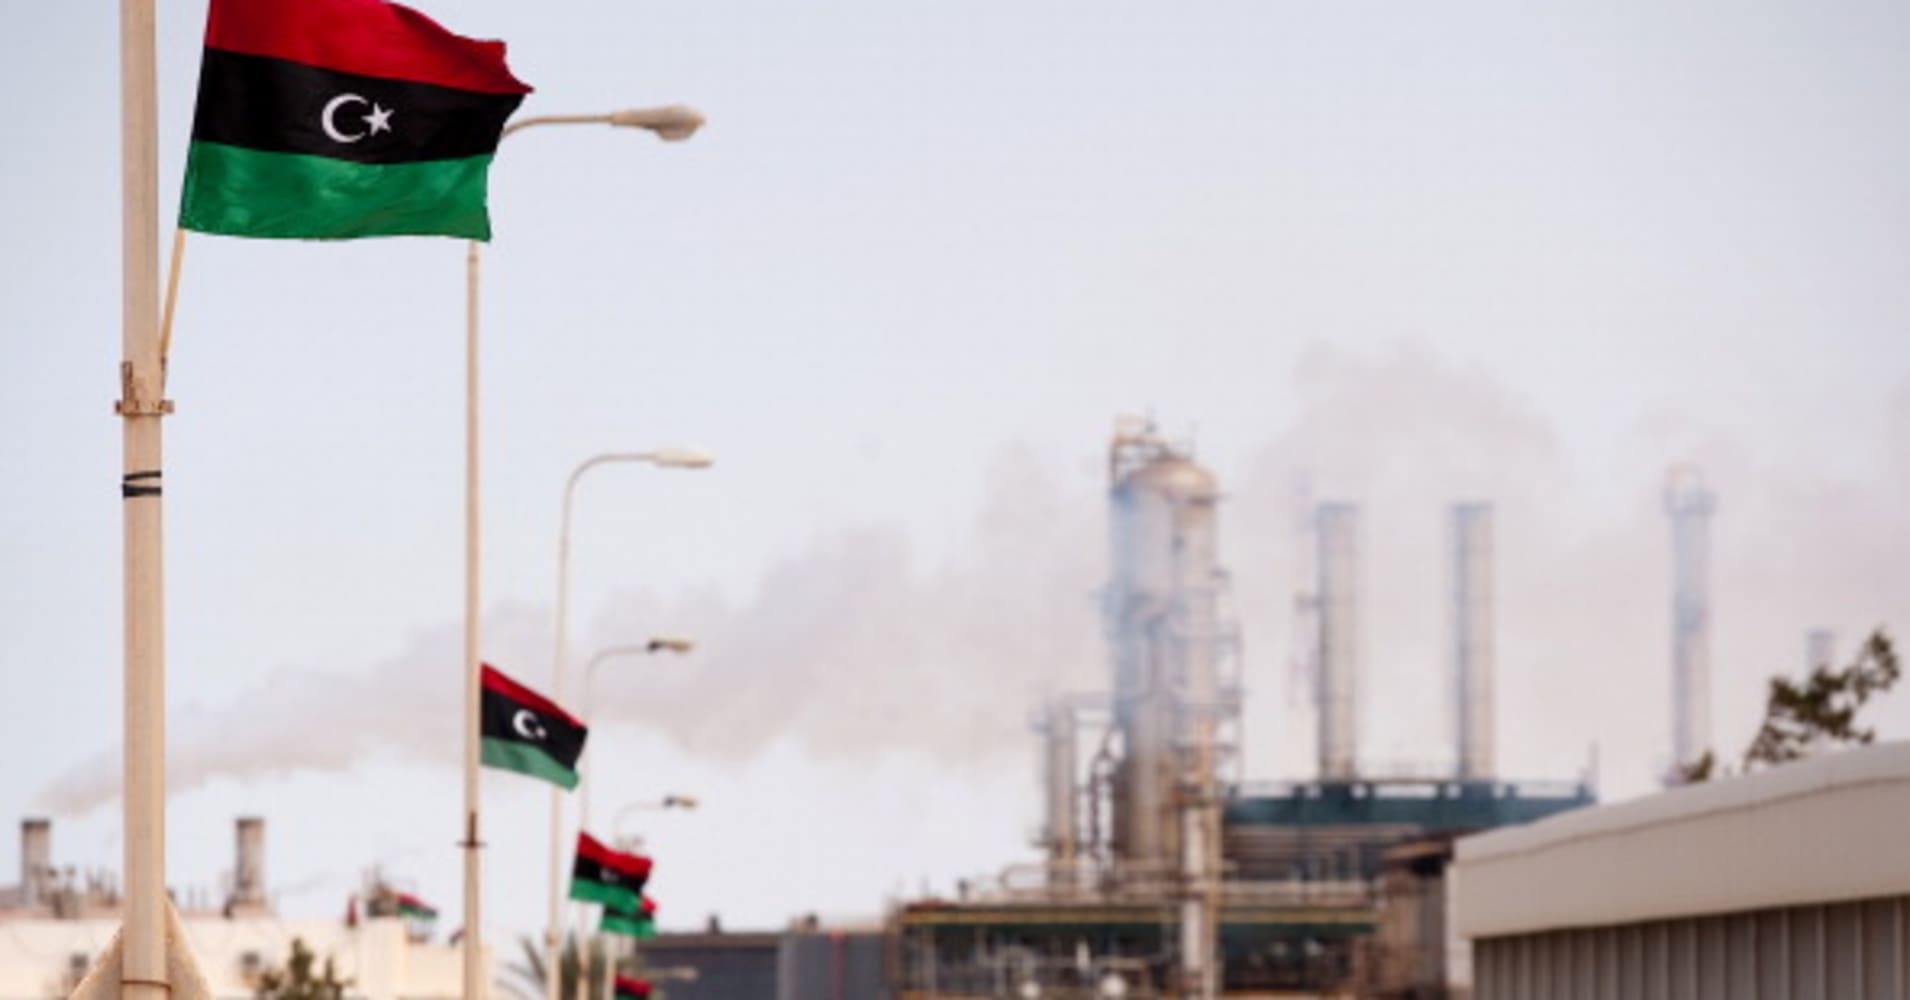 Libya's biggest oil field is being held hostage, but even that won't boost prices